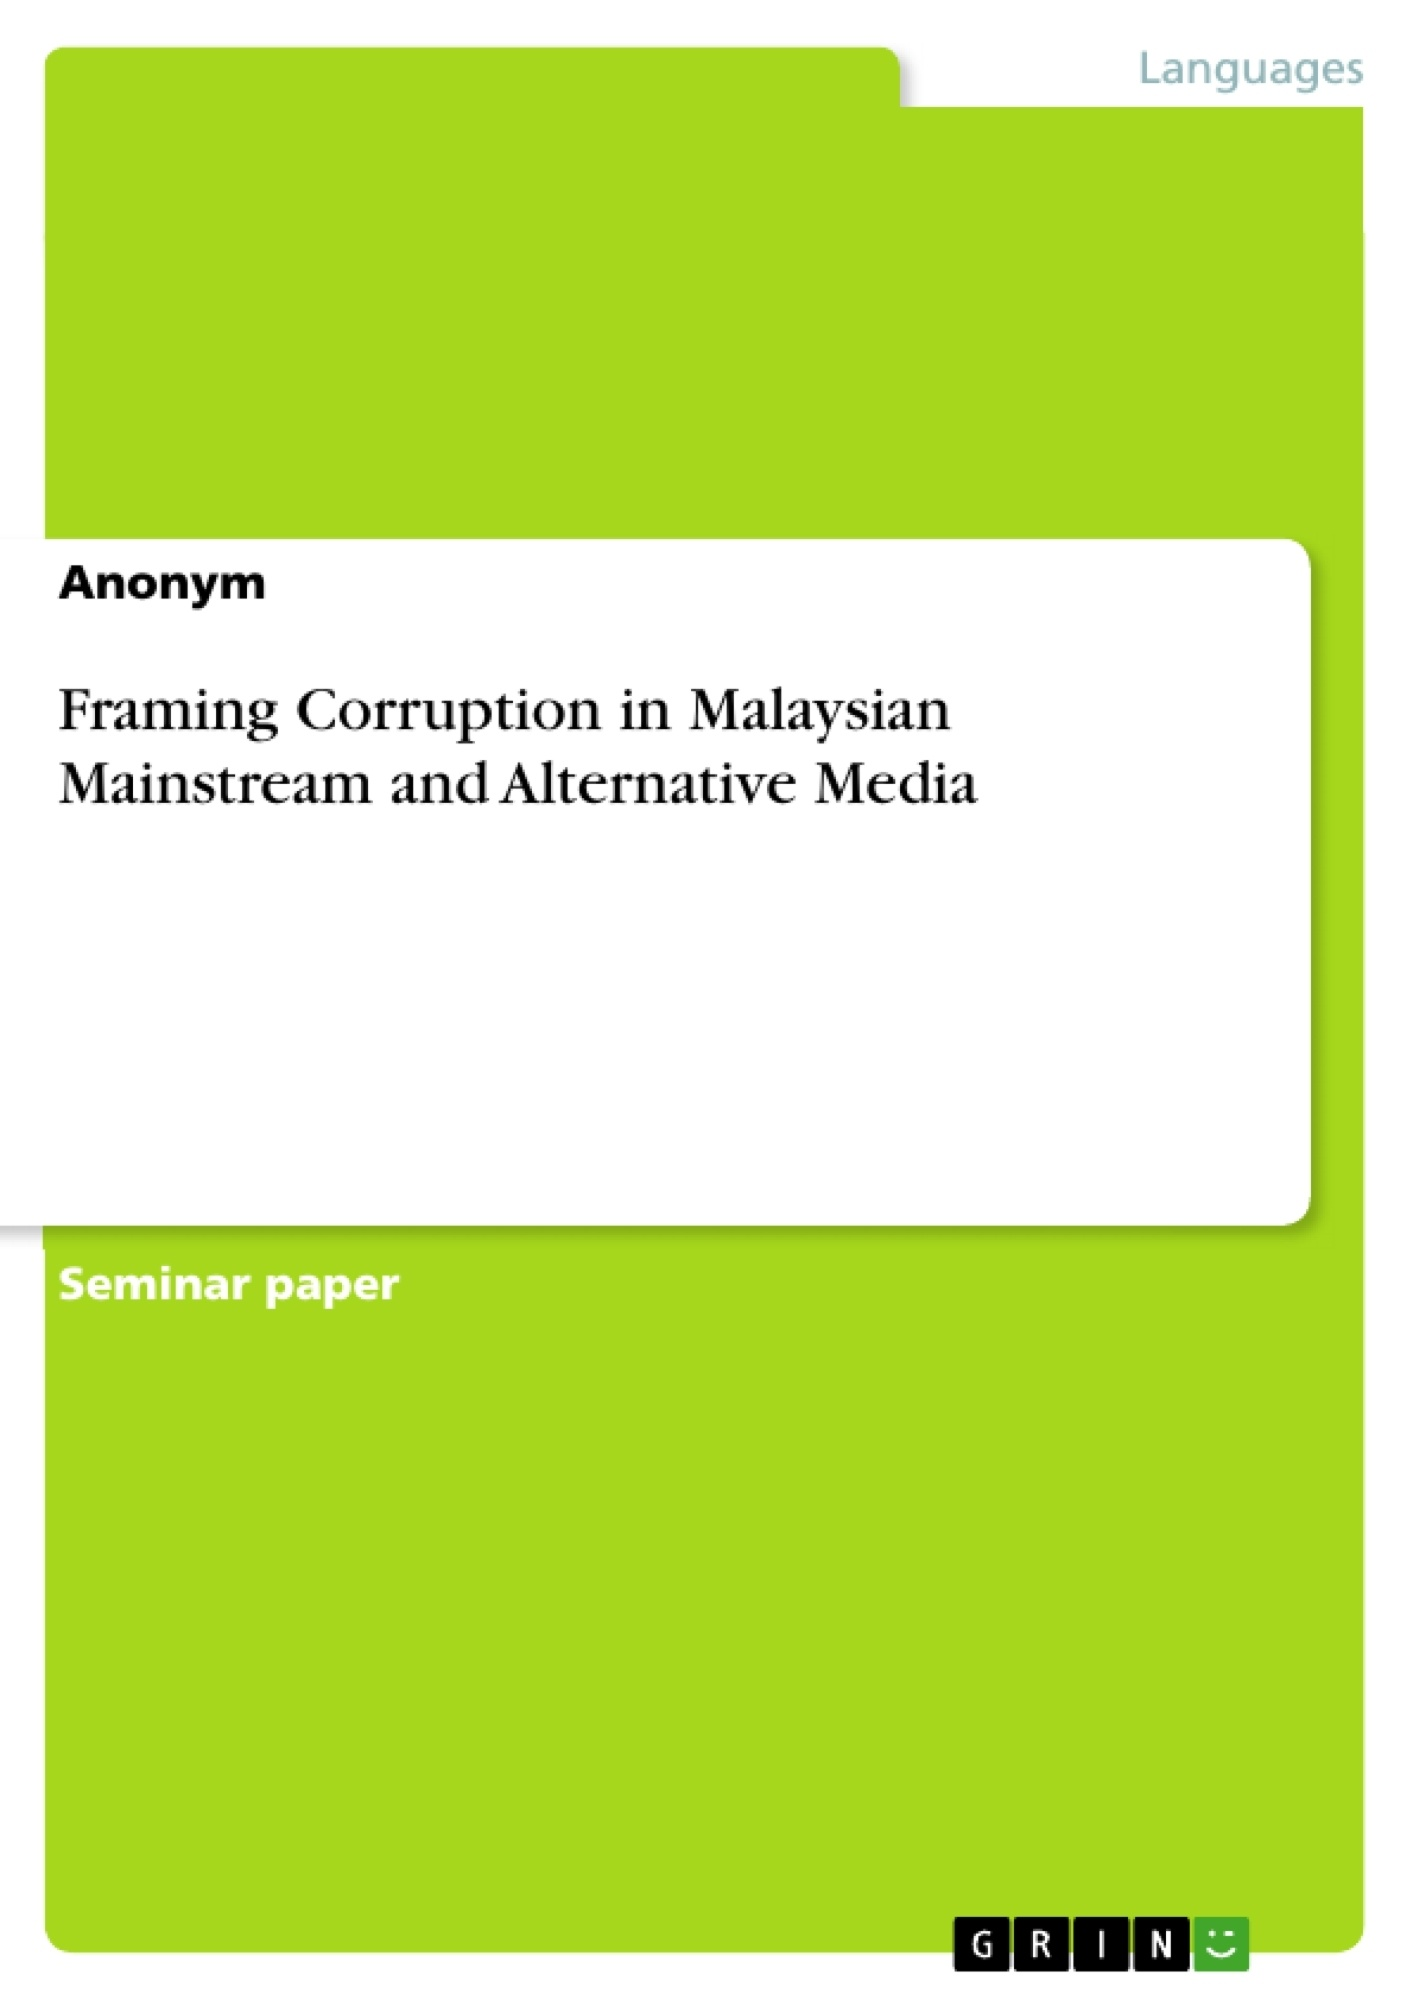 Title: Framing Corruption in Malaysian Mainstream and Alternative Media